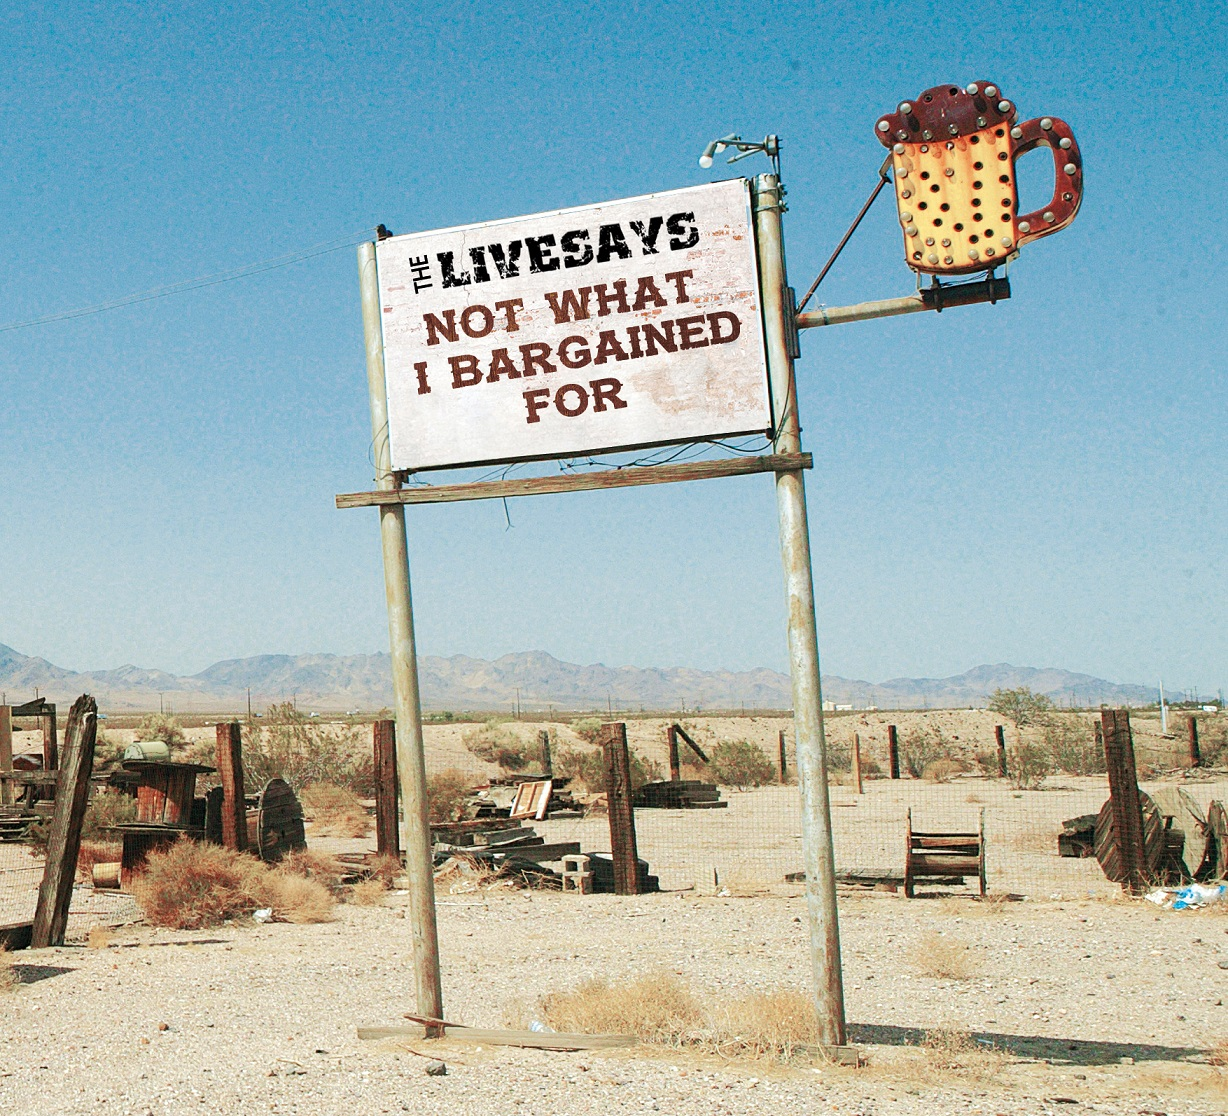 Blending Memorable Fusions of Melody, Rhythm, and Message – Rising Band 'The Livesays' Continues to Champion Americana Music in Latest Album Titled 'Not What I Bargained For'